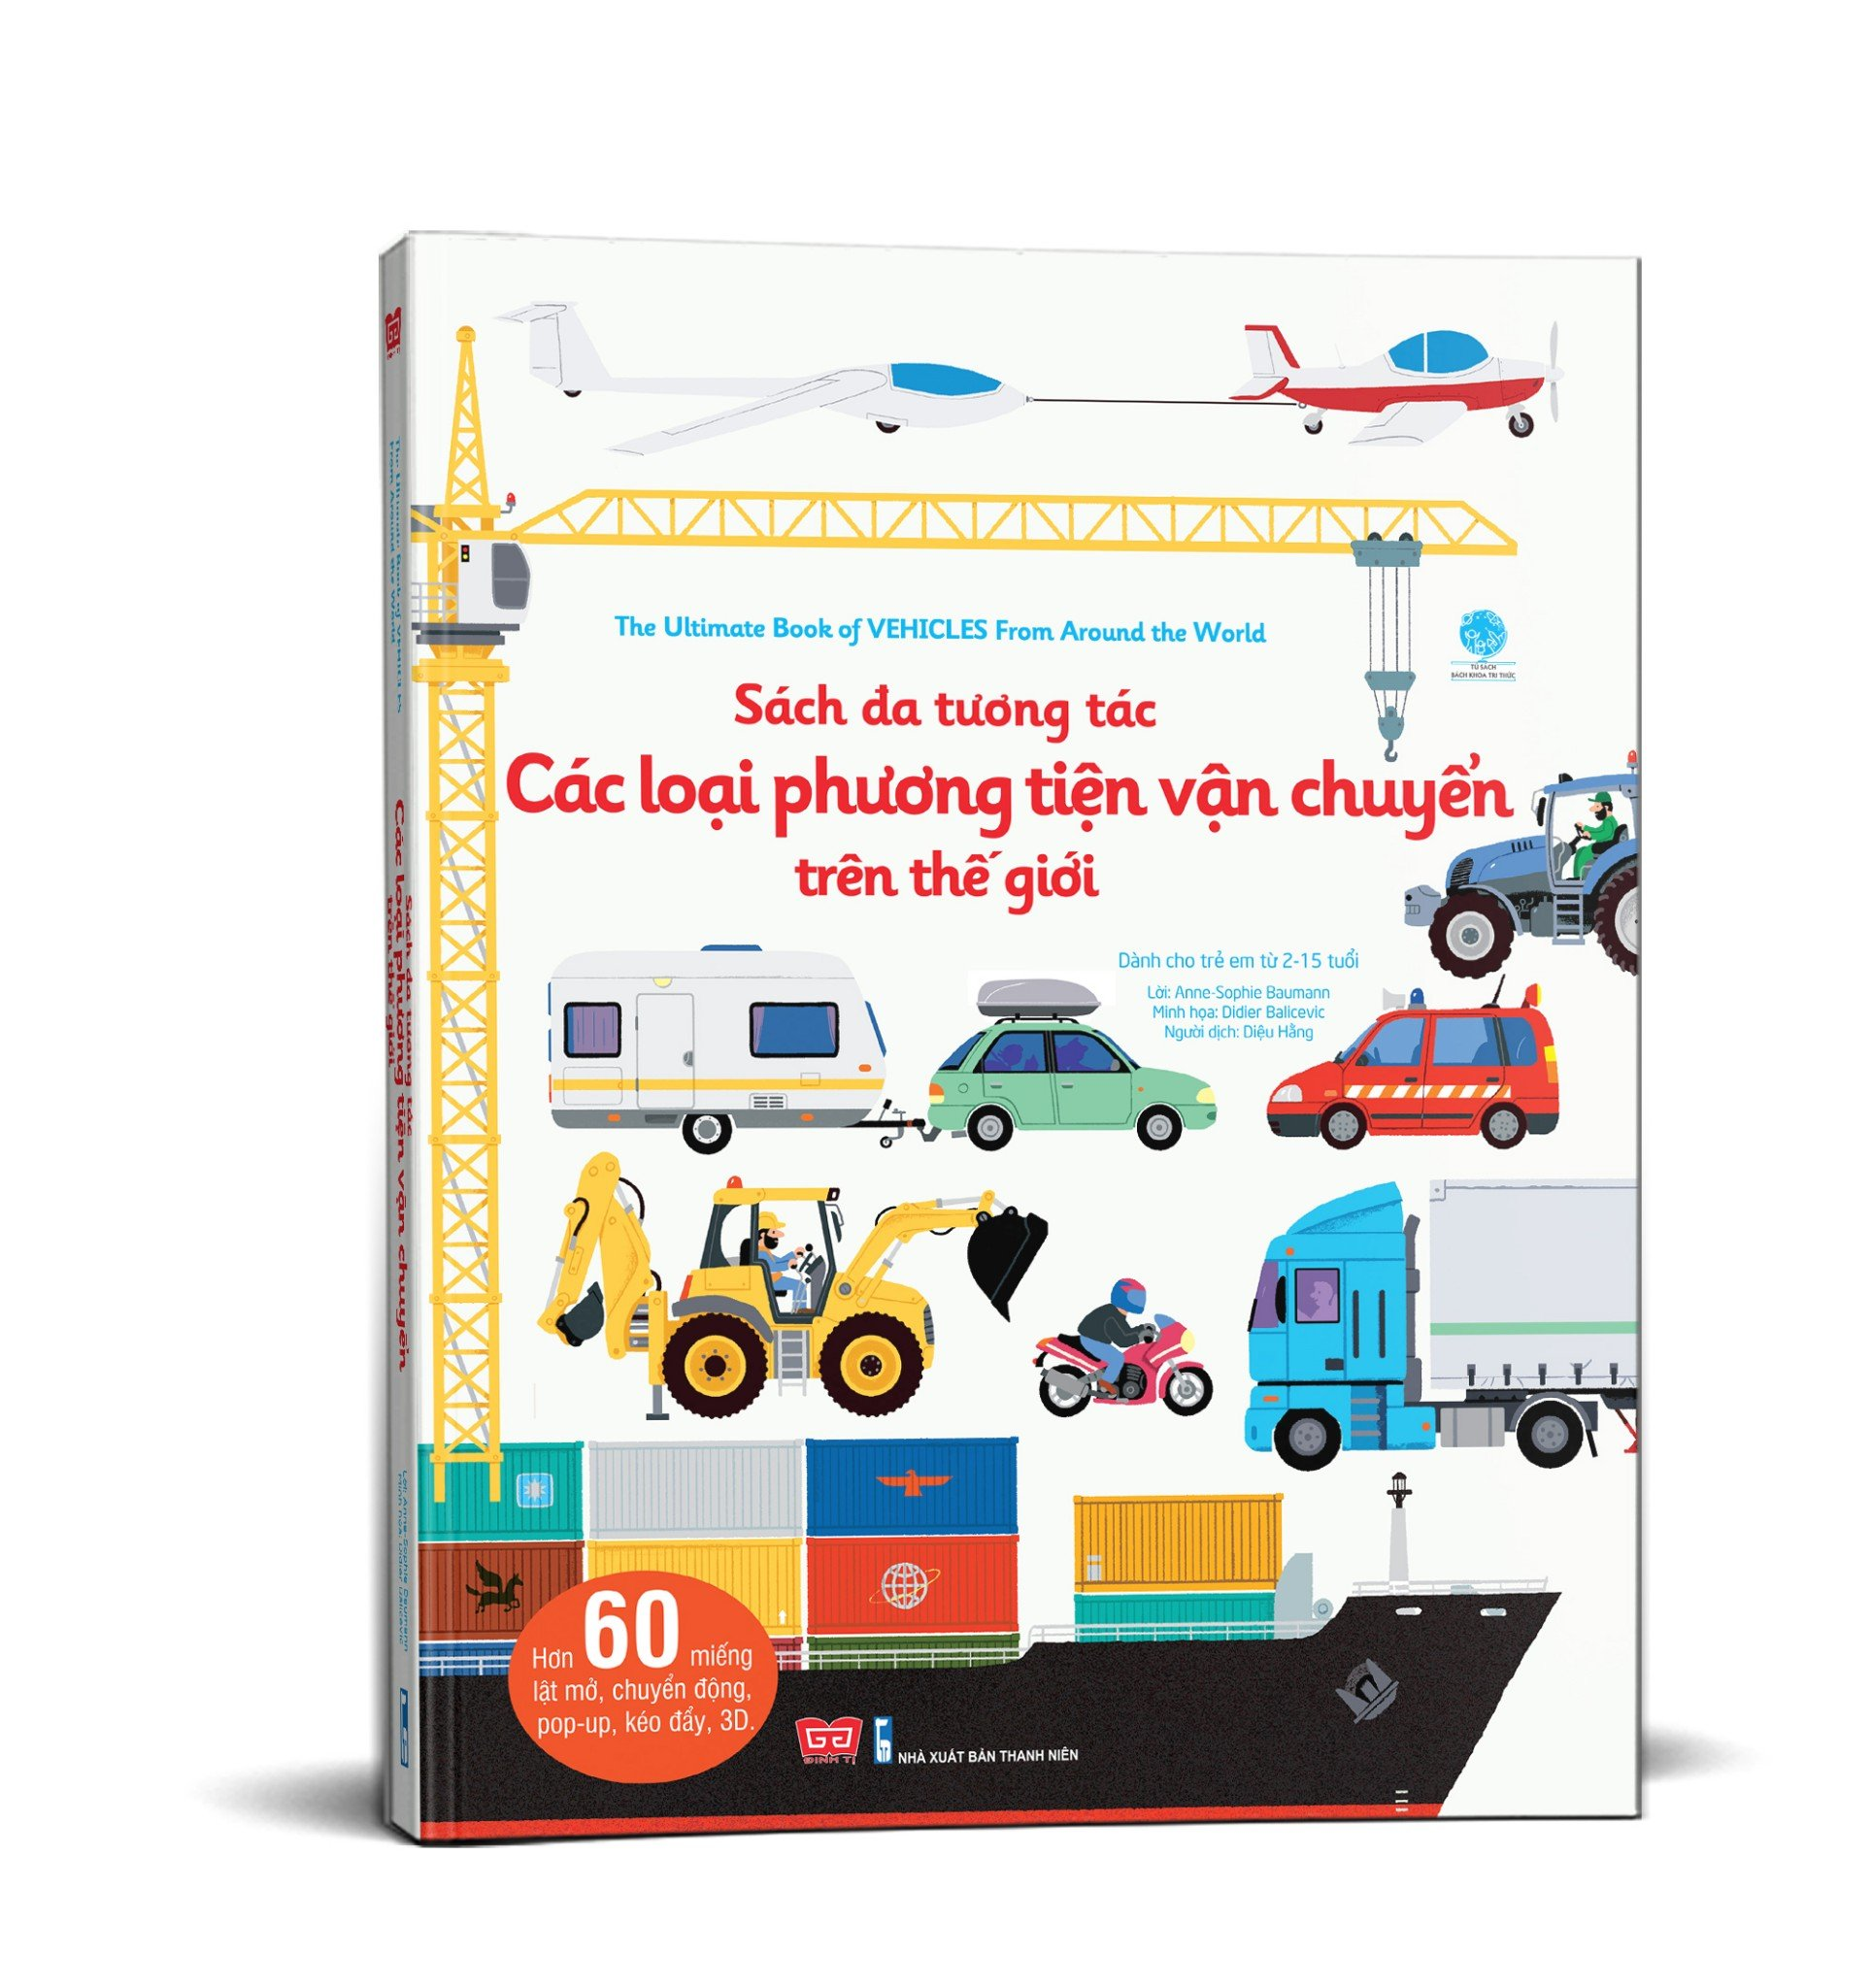 Sách đa tương tác - Các loại phương tiện vận chuyển trên thế giới